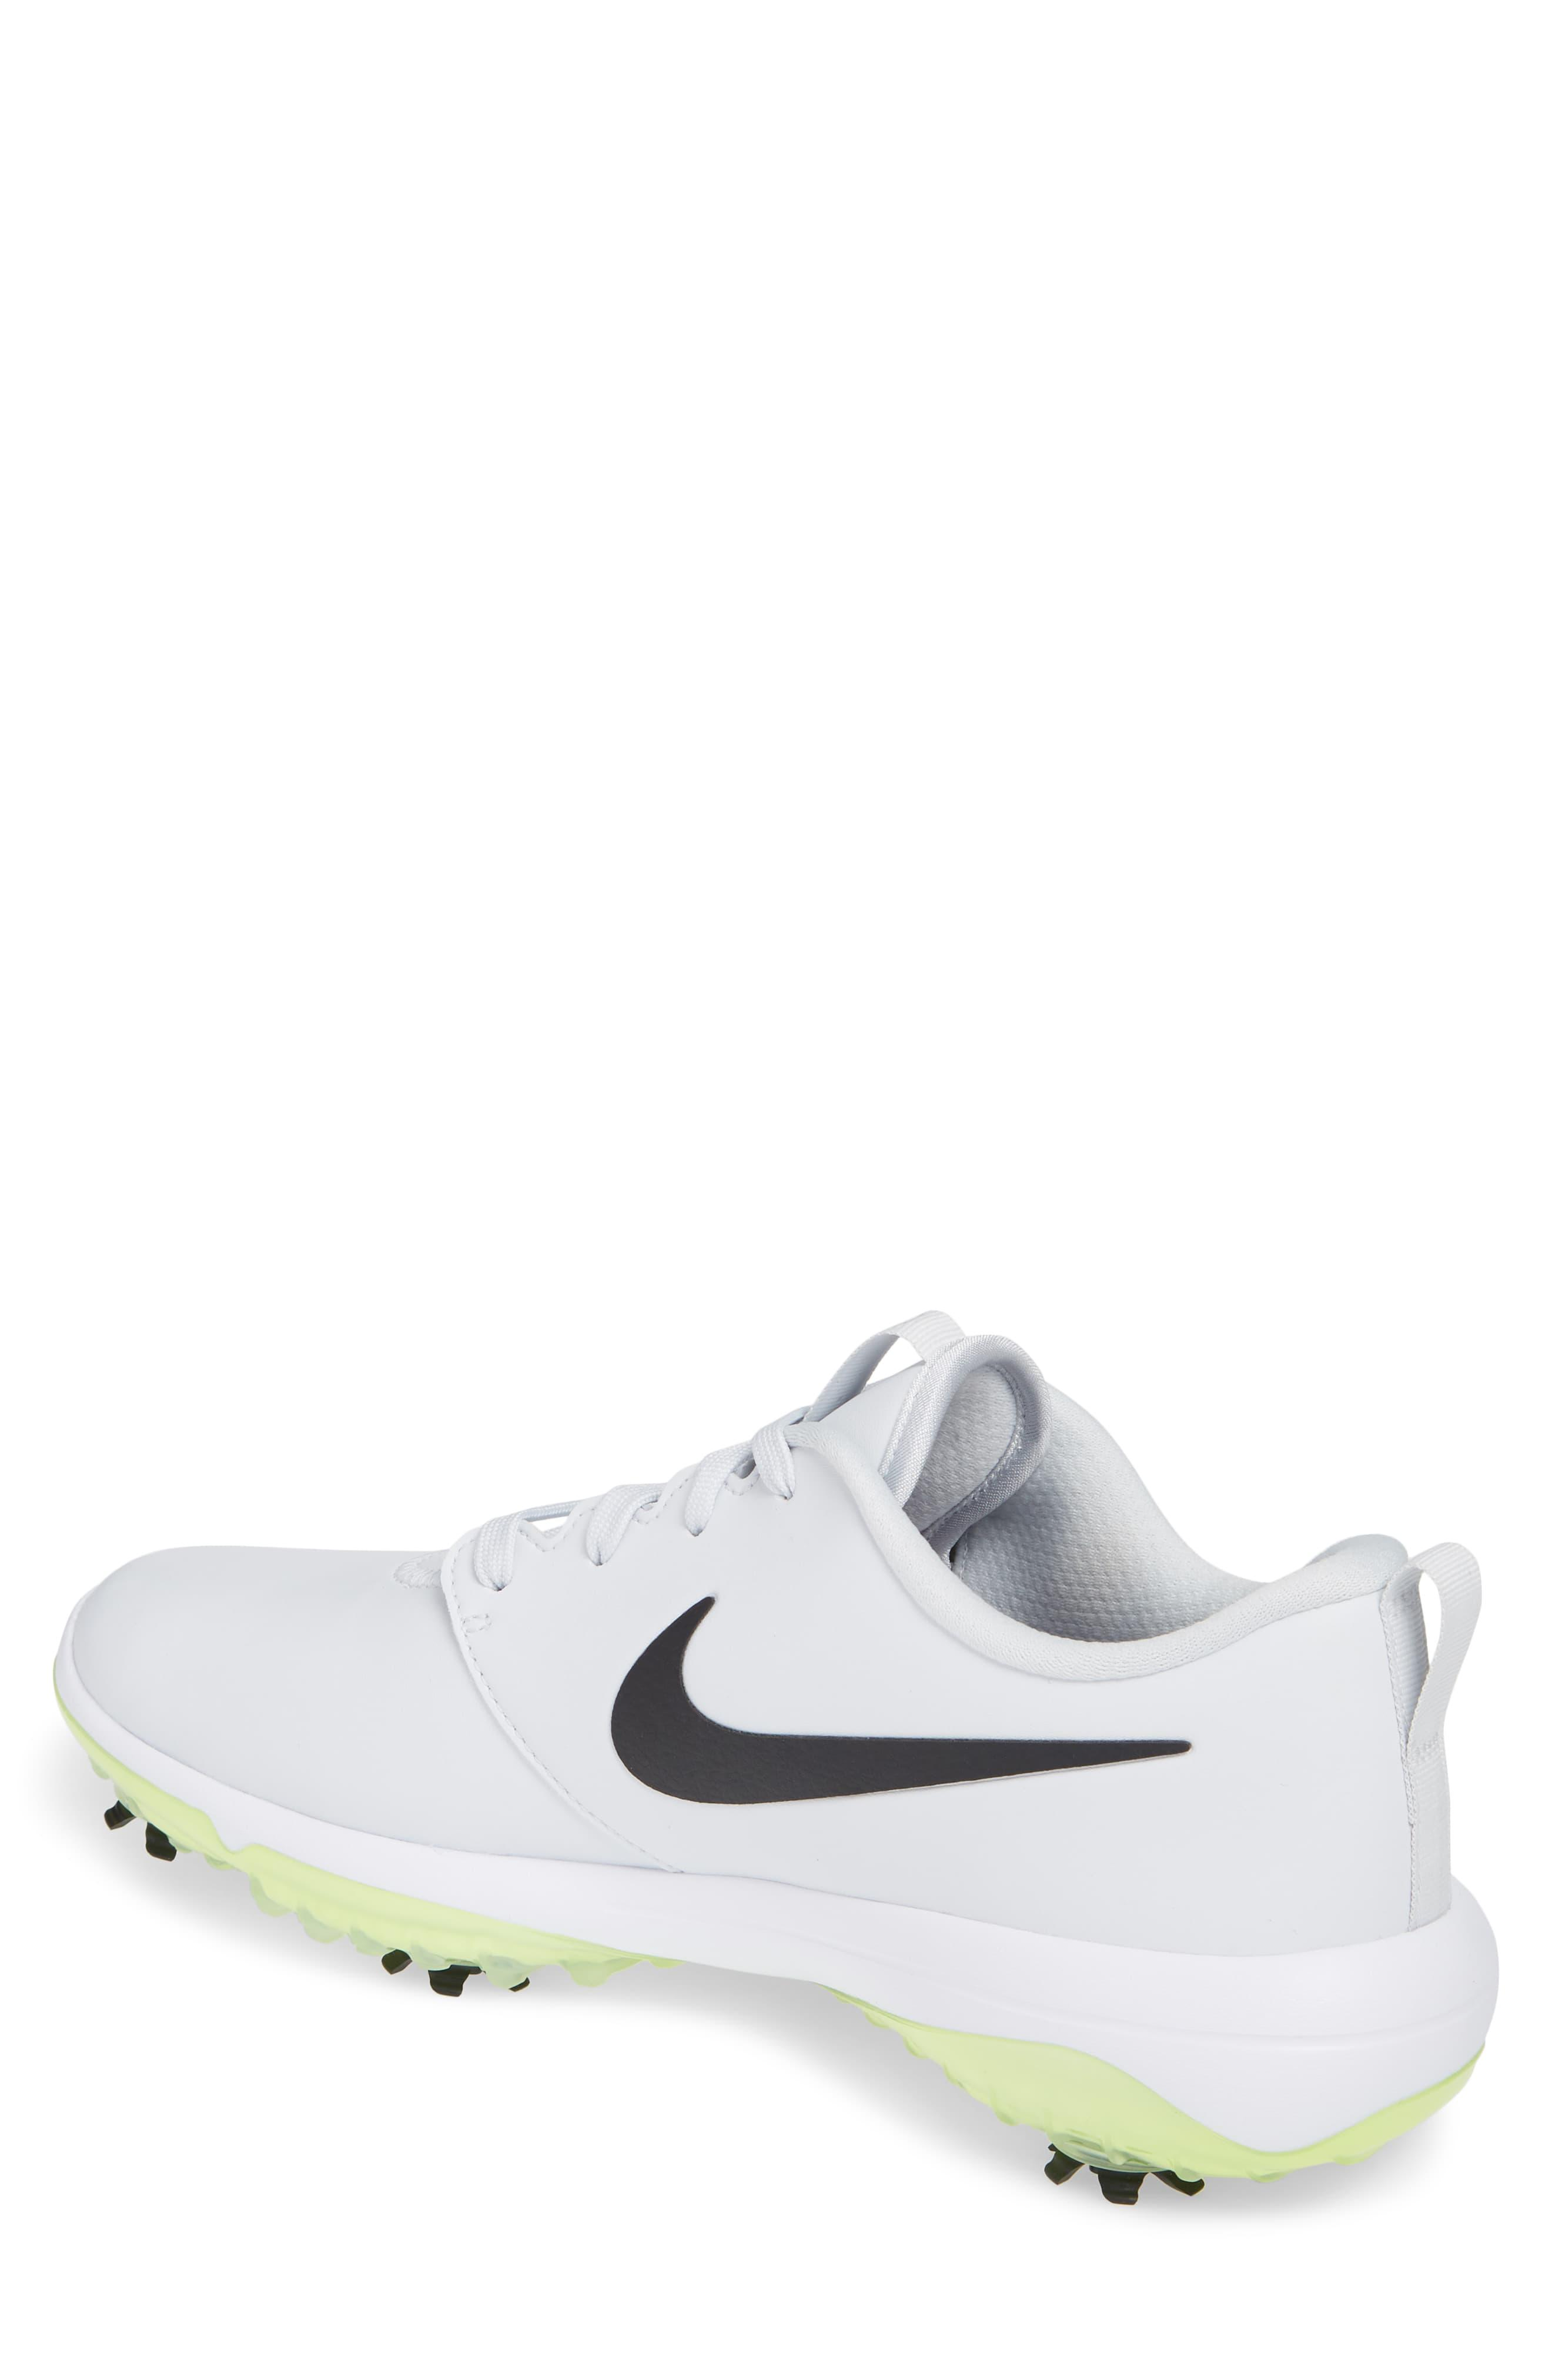 low priced 15a61 71bde Nike - Roshe G Tour (pure Platinum black white volt Glow). View fullscreen